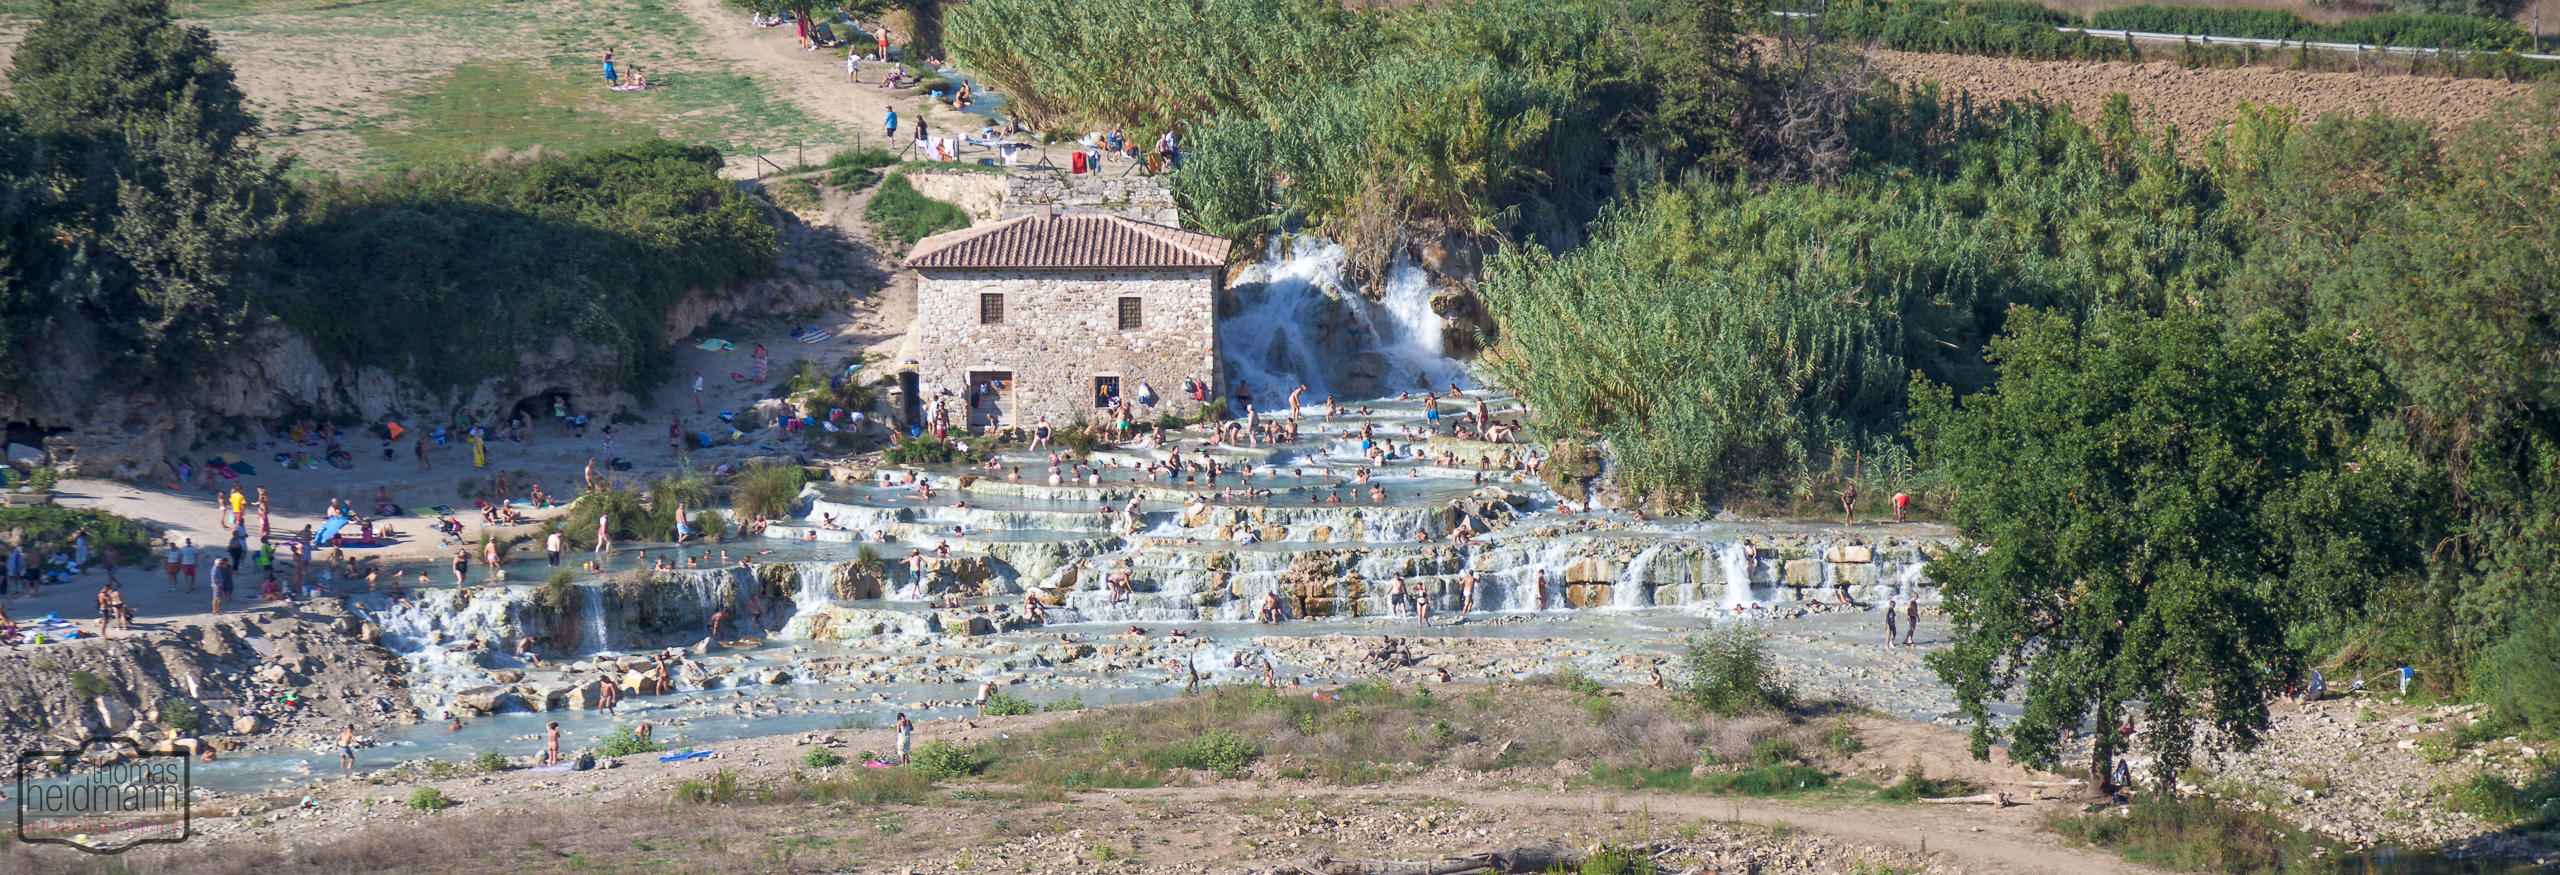 Thermalquellen in Saturnia